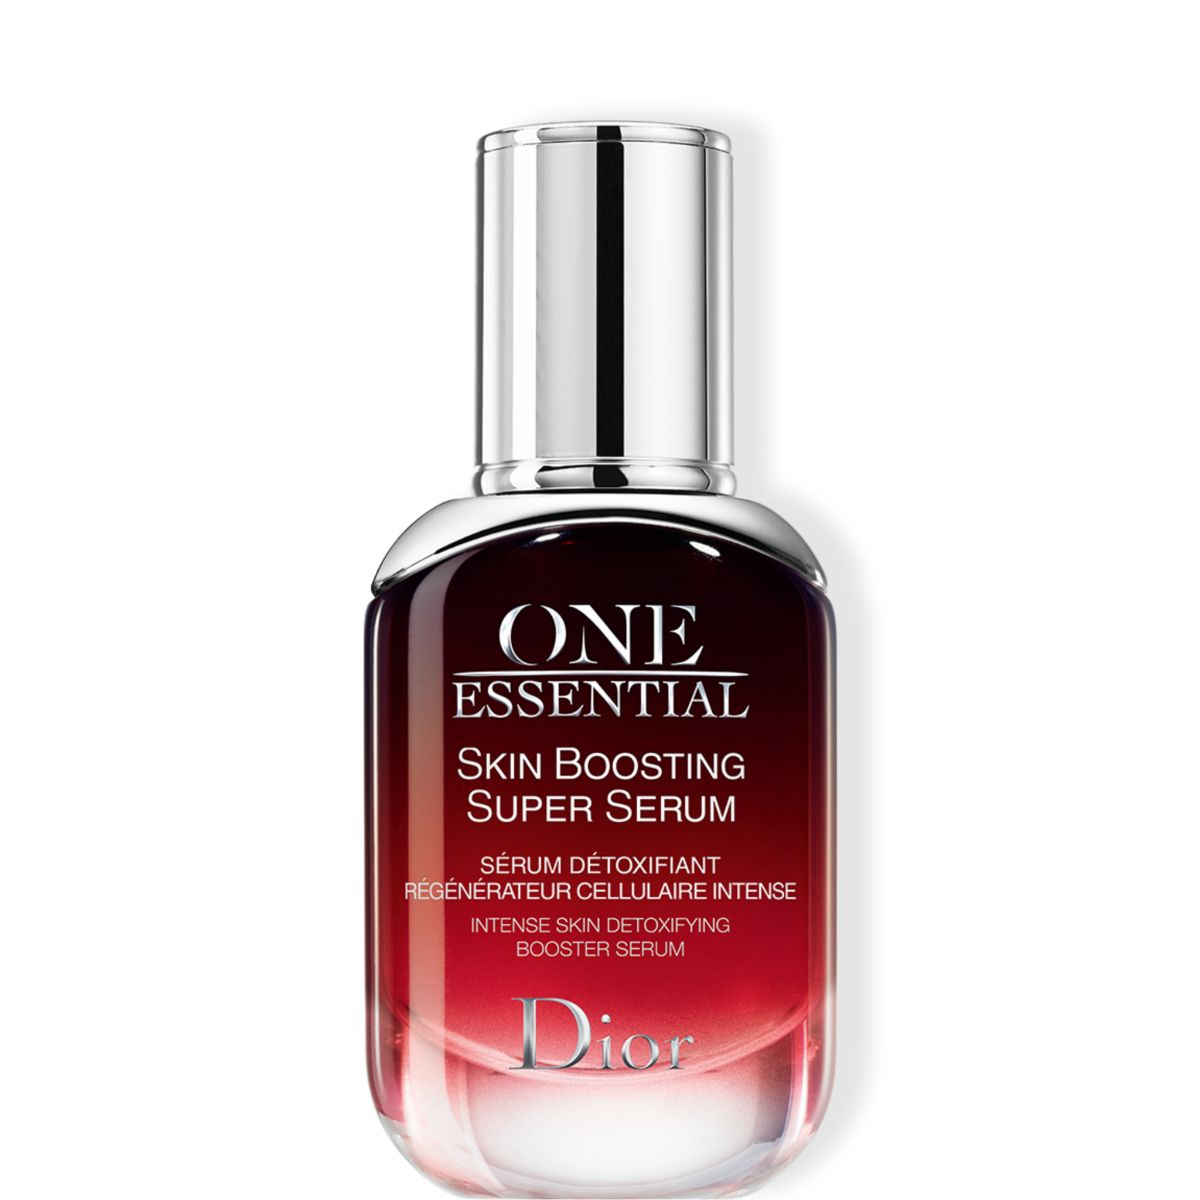 Dior - One Essential - Skin Boosting Super Serum